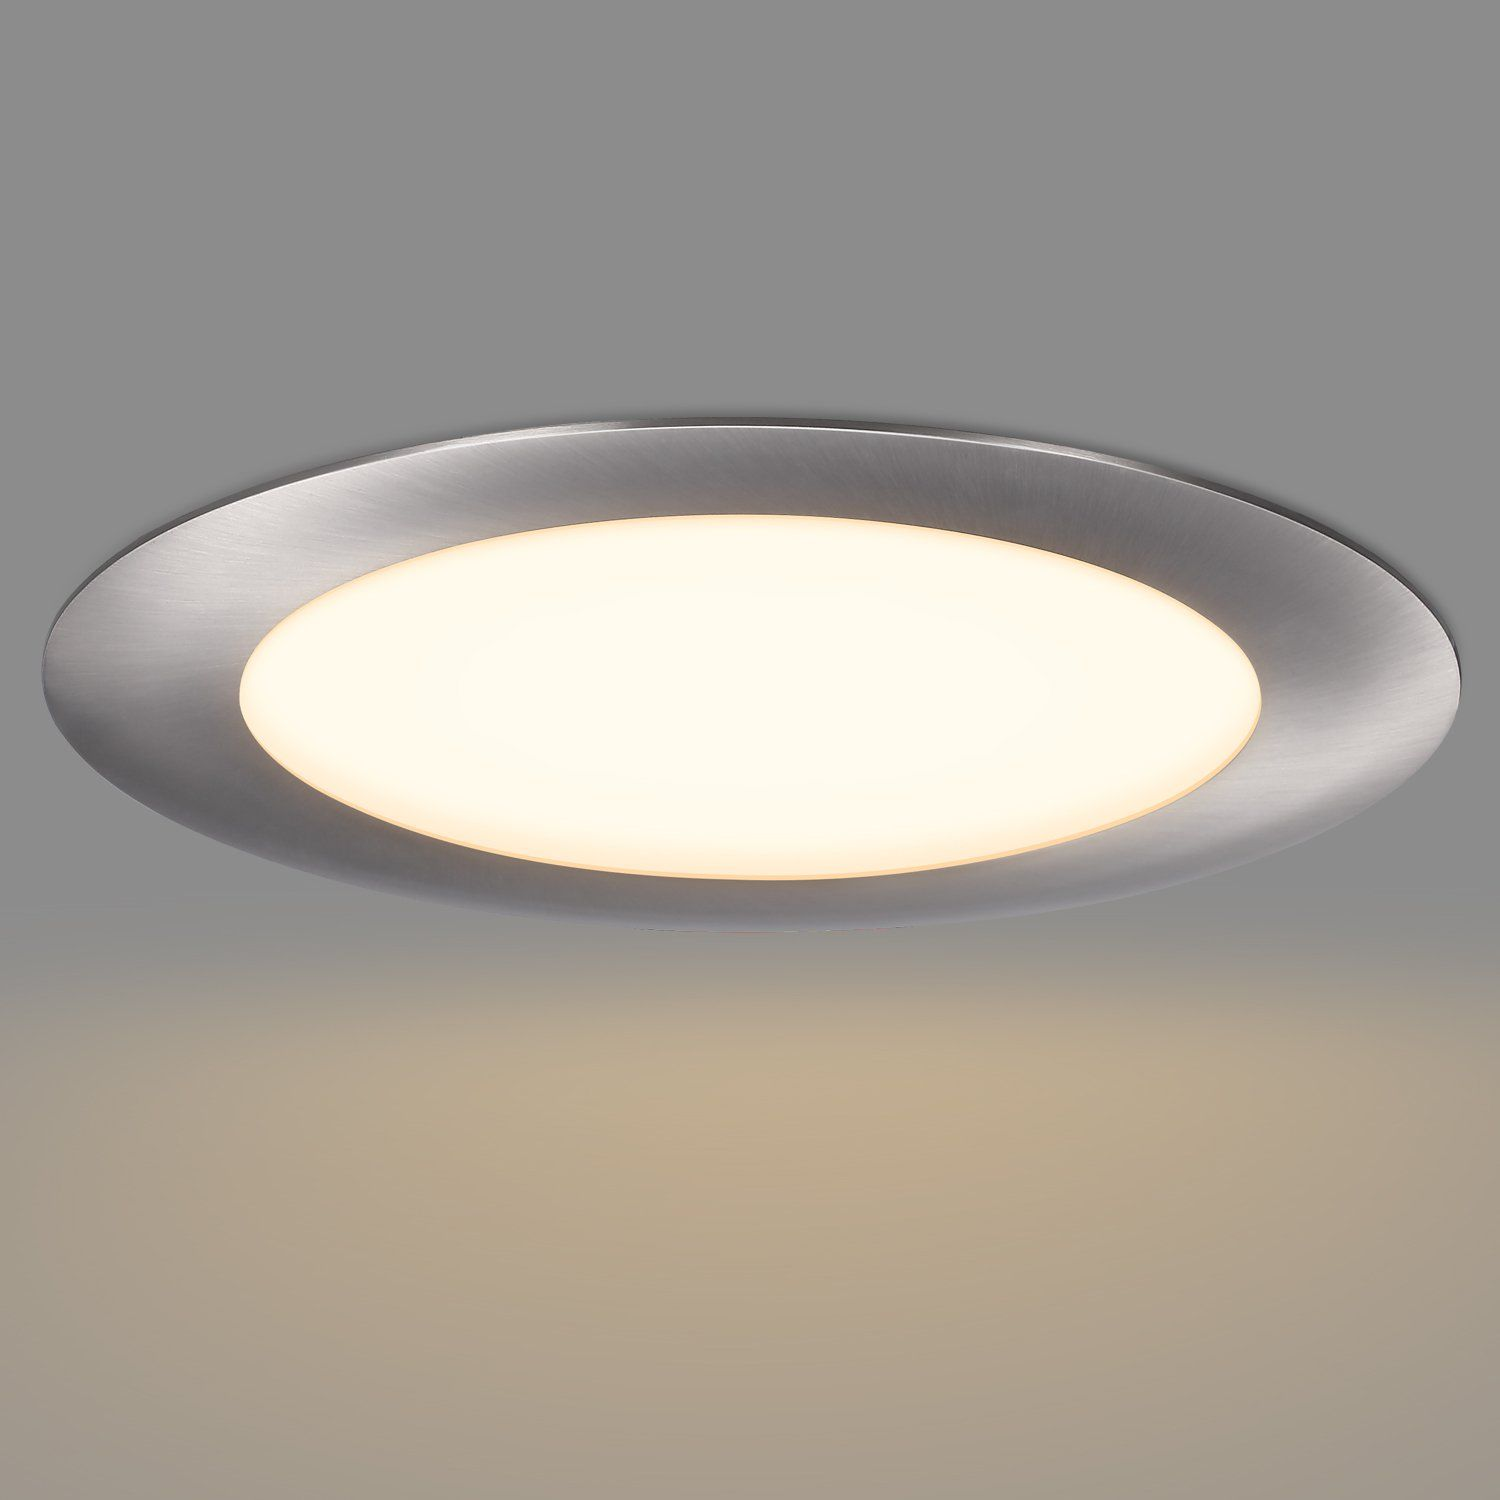 Getinlight Slim Dimmable 6 Inch Led Recessed Lighting Round